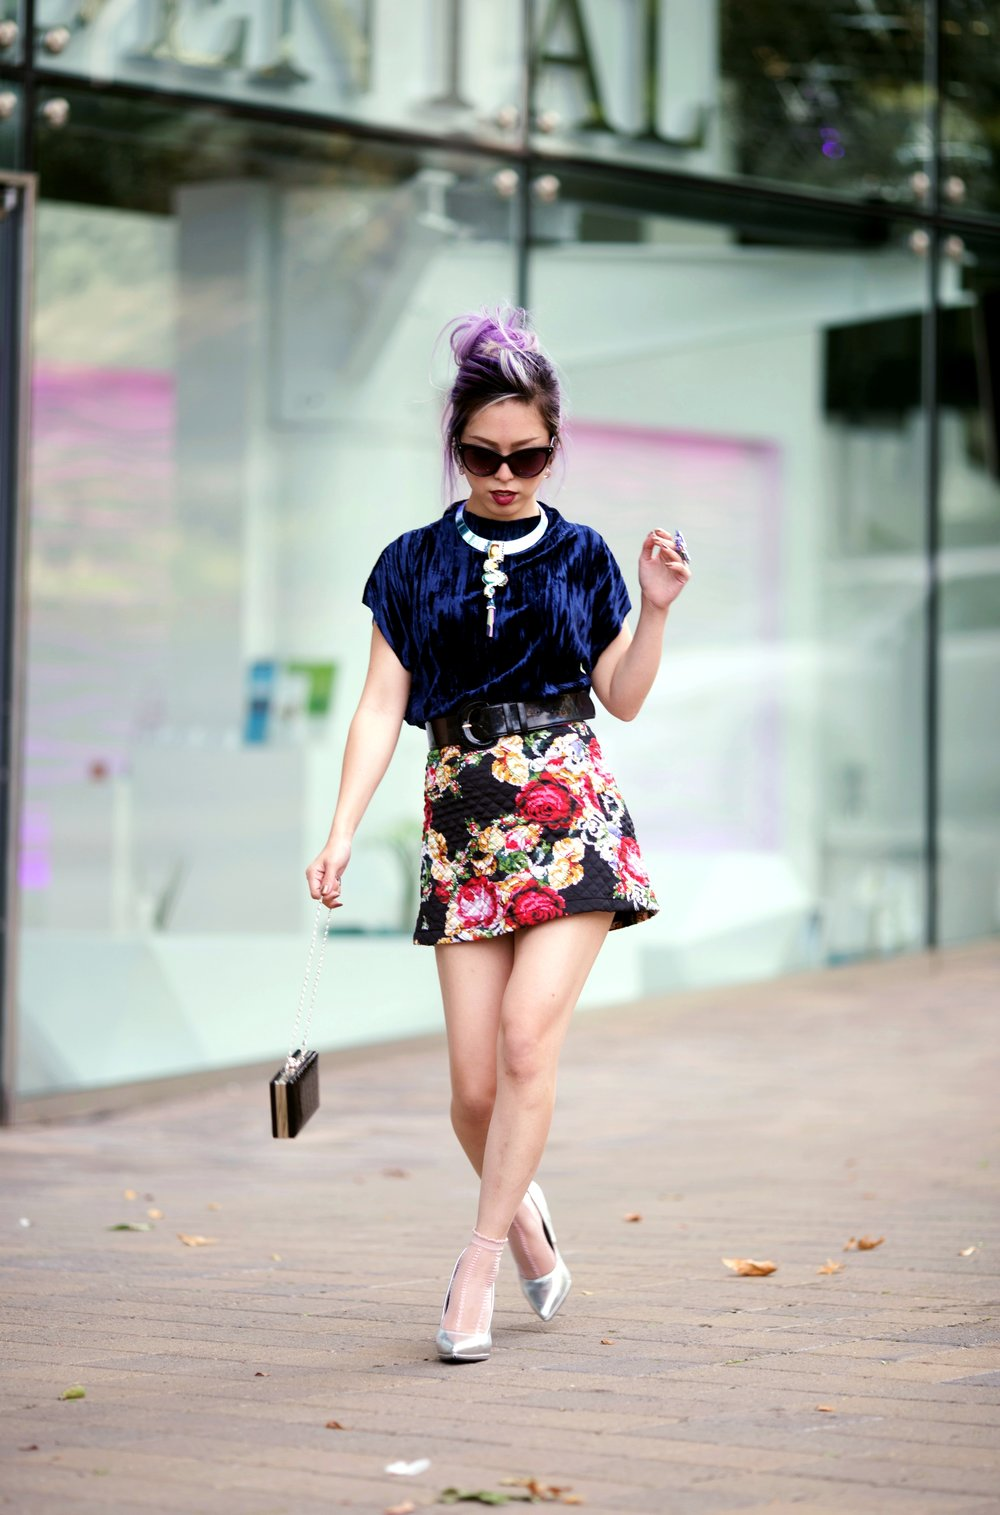 ZARA Blue Velvet Top_Forever 21 Floral Print Mini Skirt_Mango Patent Belt_Kate Spade Sheer Ankle Socks_Qupid Silver Pumps_Aldo Cateye Sunglasses_Swarovski Fluorescent Necklace & Fluorescent Ring_Aika's Love Closet_Seattle Fashion Blogger_Japanese_Lavender Hair_Mermaid Hair 7